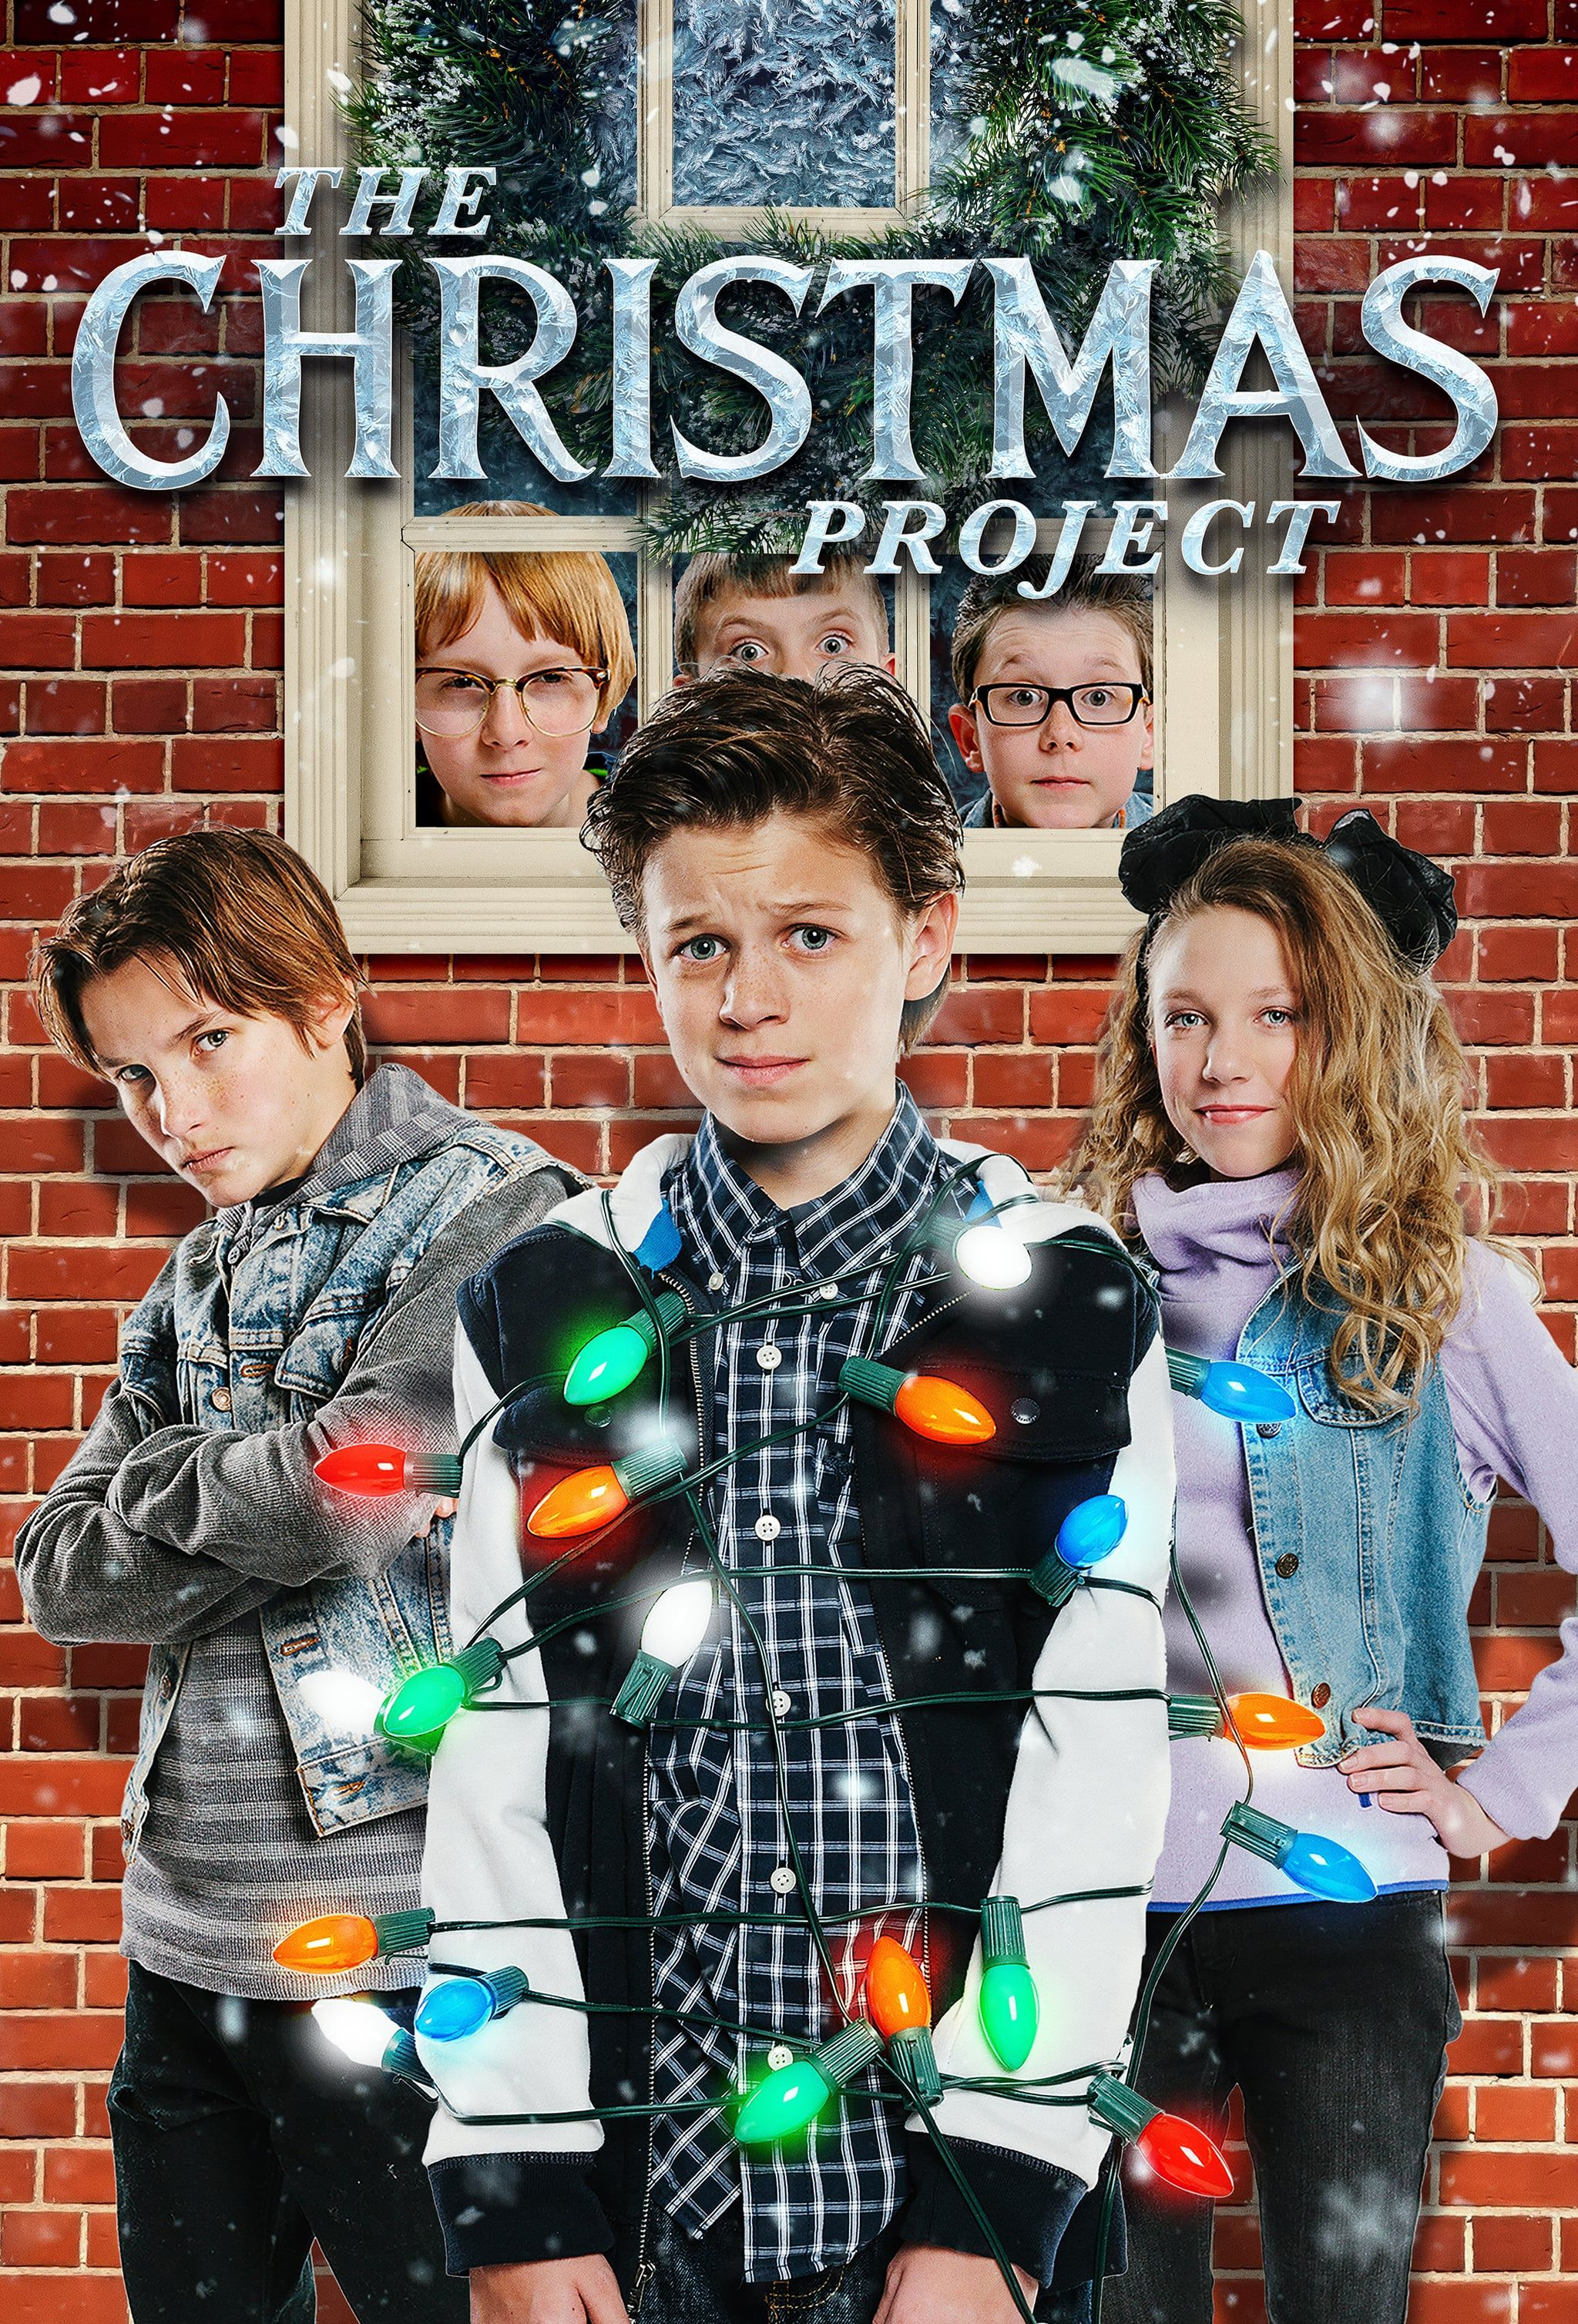 The Christmas Project Christmas Projects Streaming Movies Movies